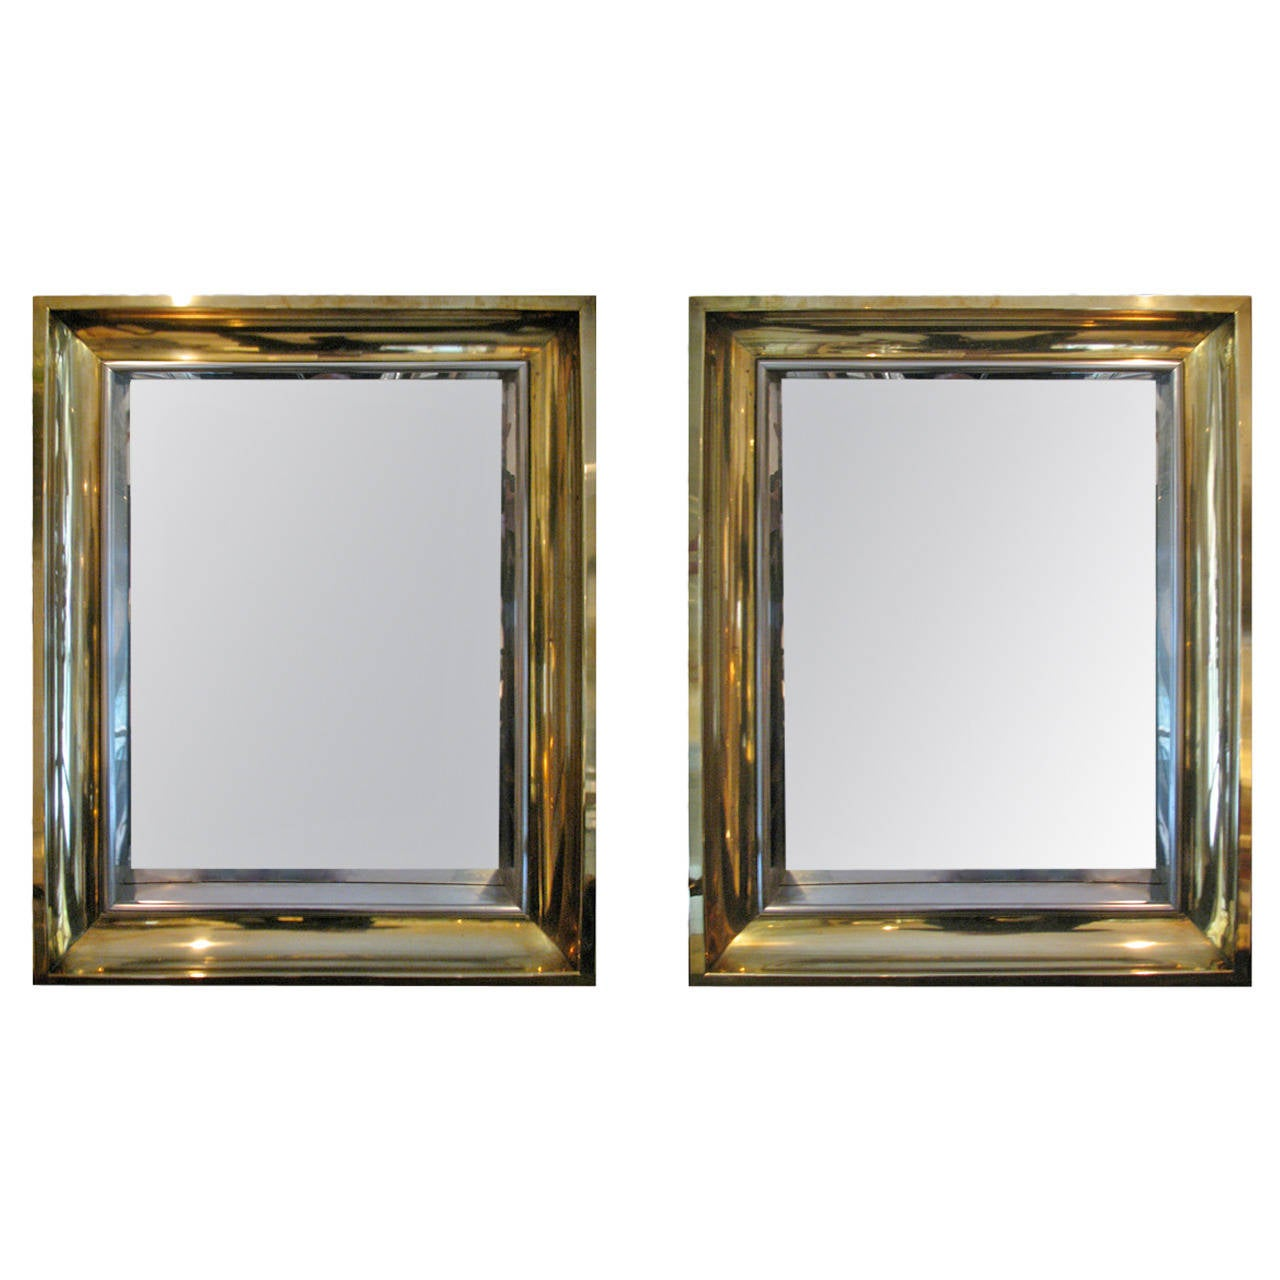 Pair of metal framed mirrors at 1stdibs for Metal frame mirror